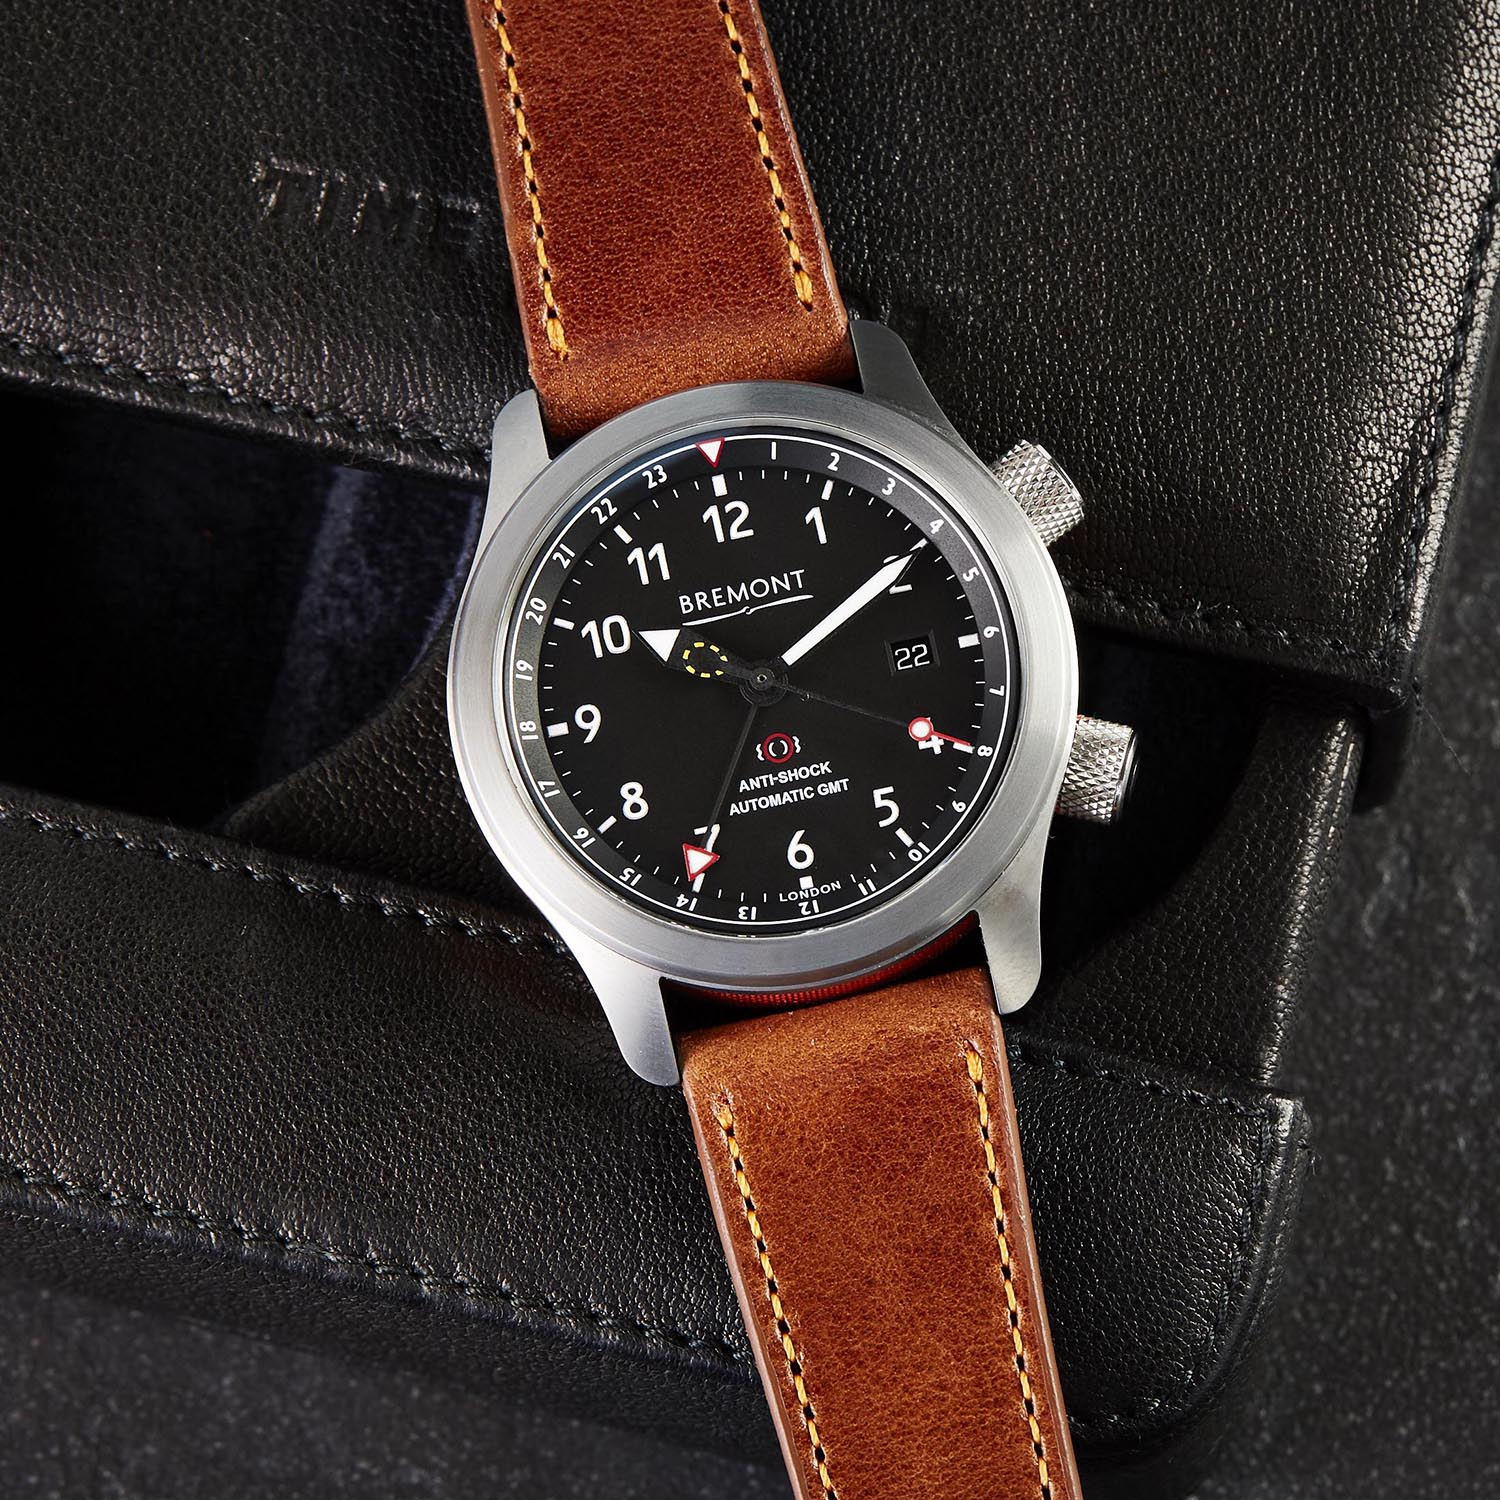 The 5 Bremont models we chose for our shop, and why …